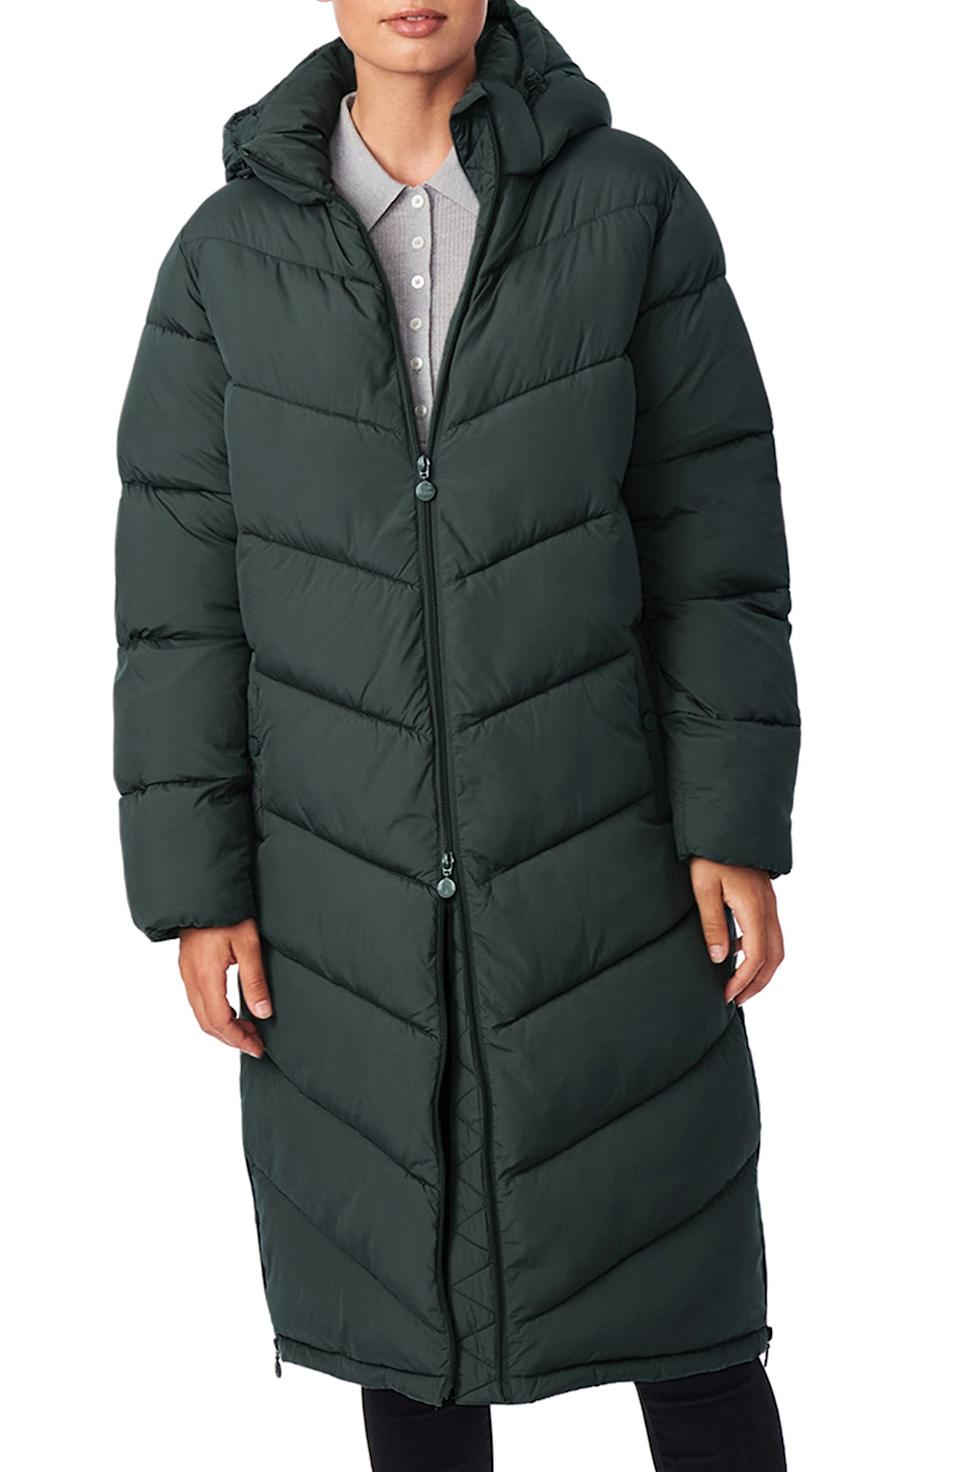 Bernardo Recycled Micro Touch Water Resistant Packable Jacket. Image via Nordstrom.